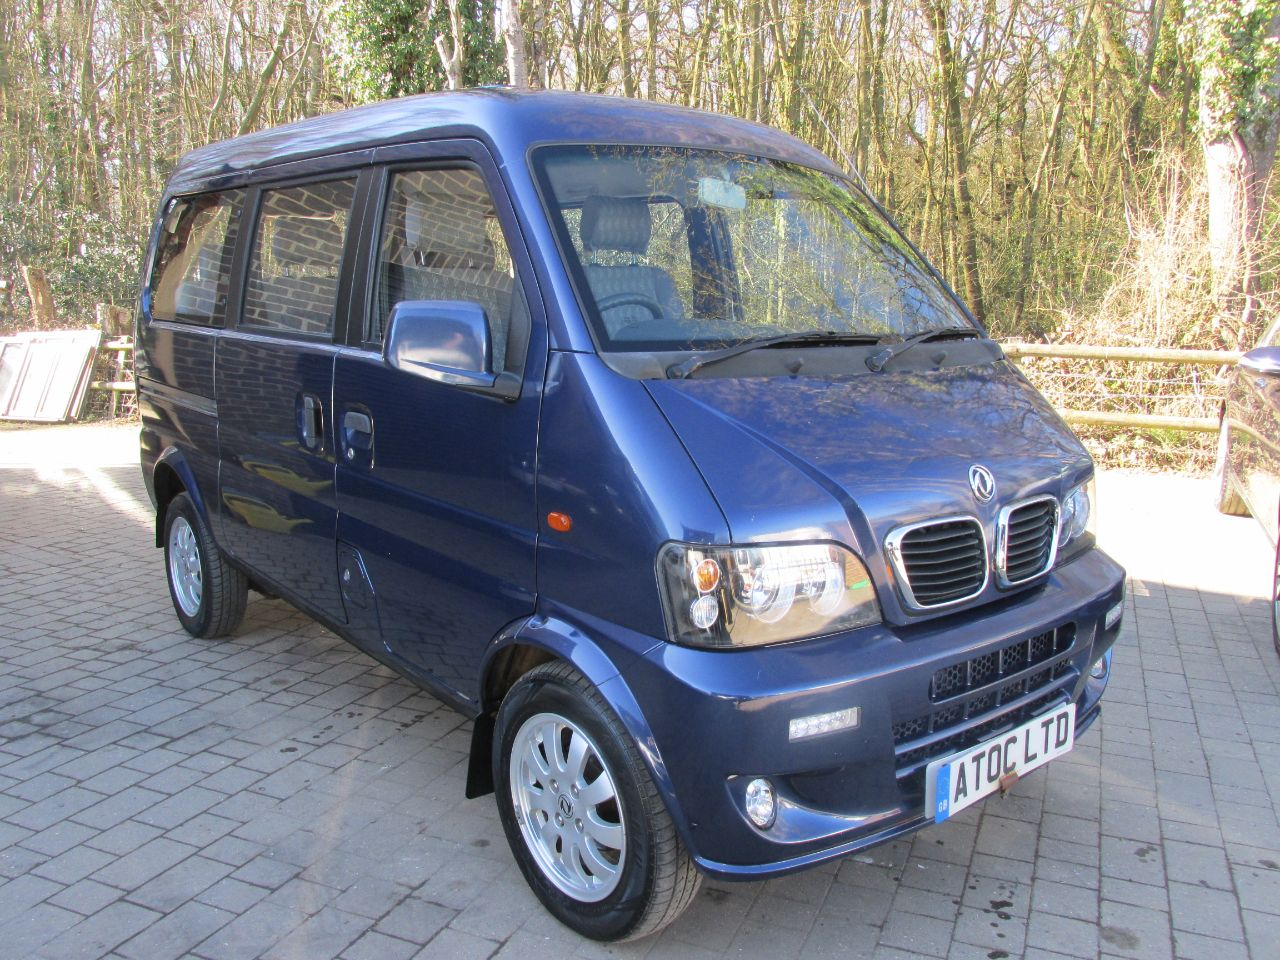 Dfsk Loadhopper 1.3 Minibus 7 seats Minibus Petrol Blue at A Touch of Class Kingsnorth